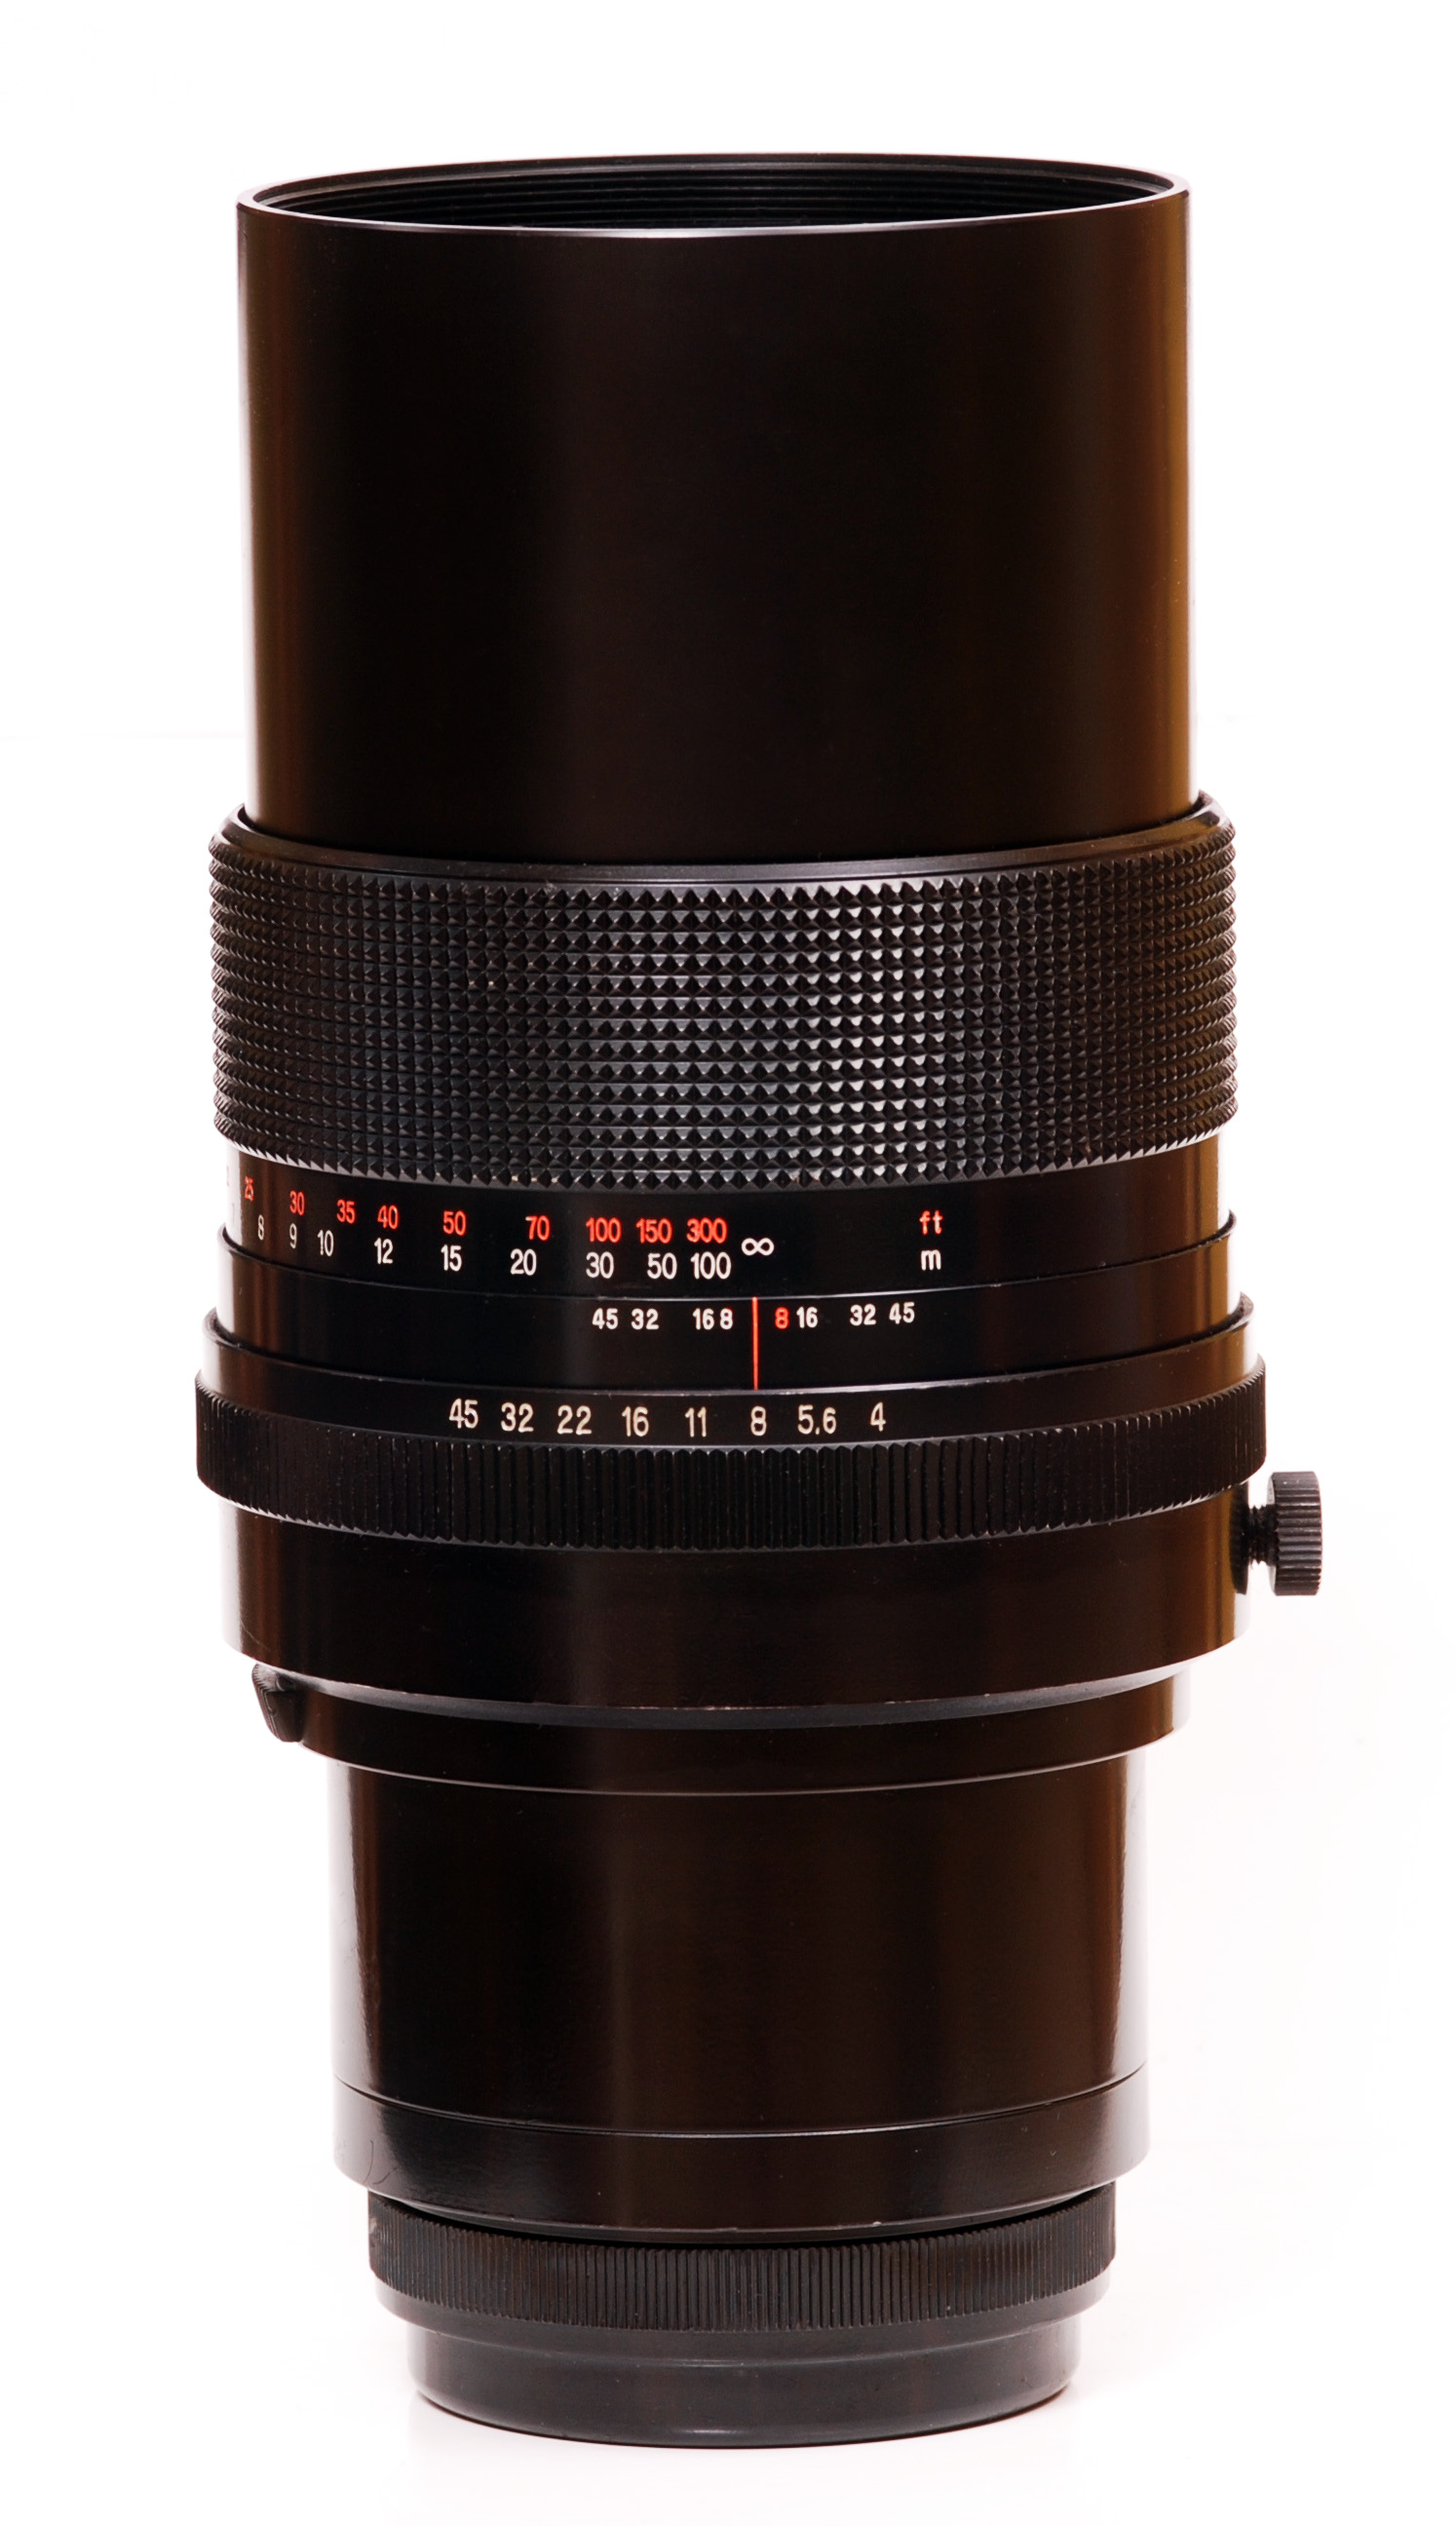 MC Sonnar 4/300mm